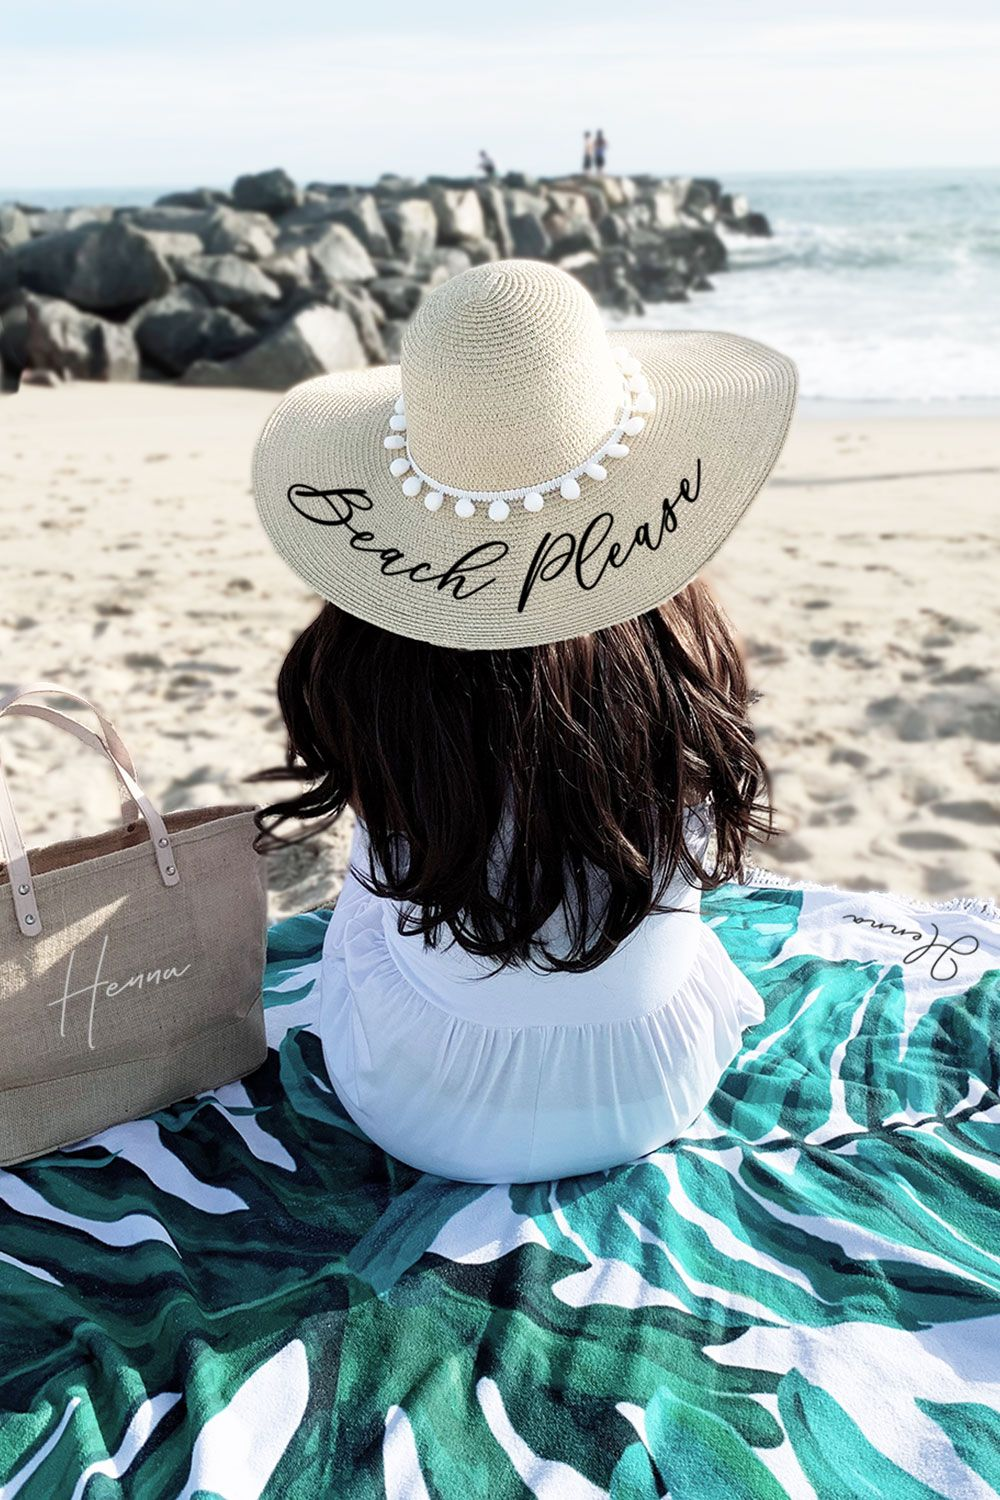 Bridal Party Floppy Hat Beach Hat Personalized Bride Gift DREAM CHASER CUSTOM Women/'s Summer Floppy Straw Hat Beach Hat Bridesmaid Gift